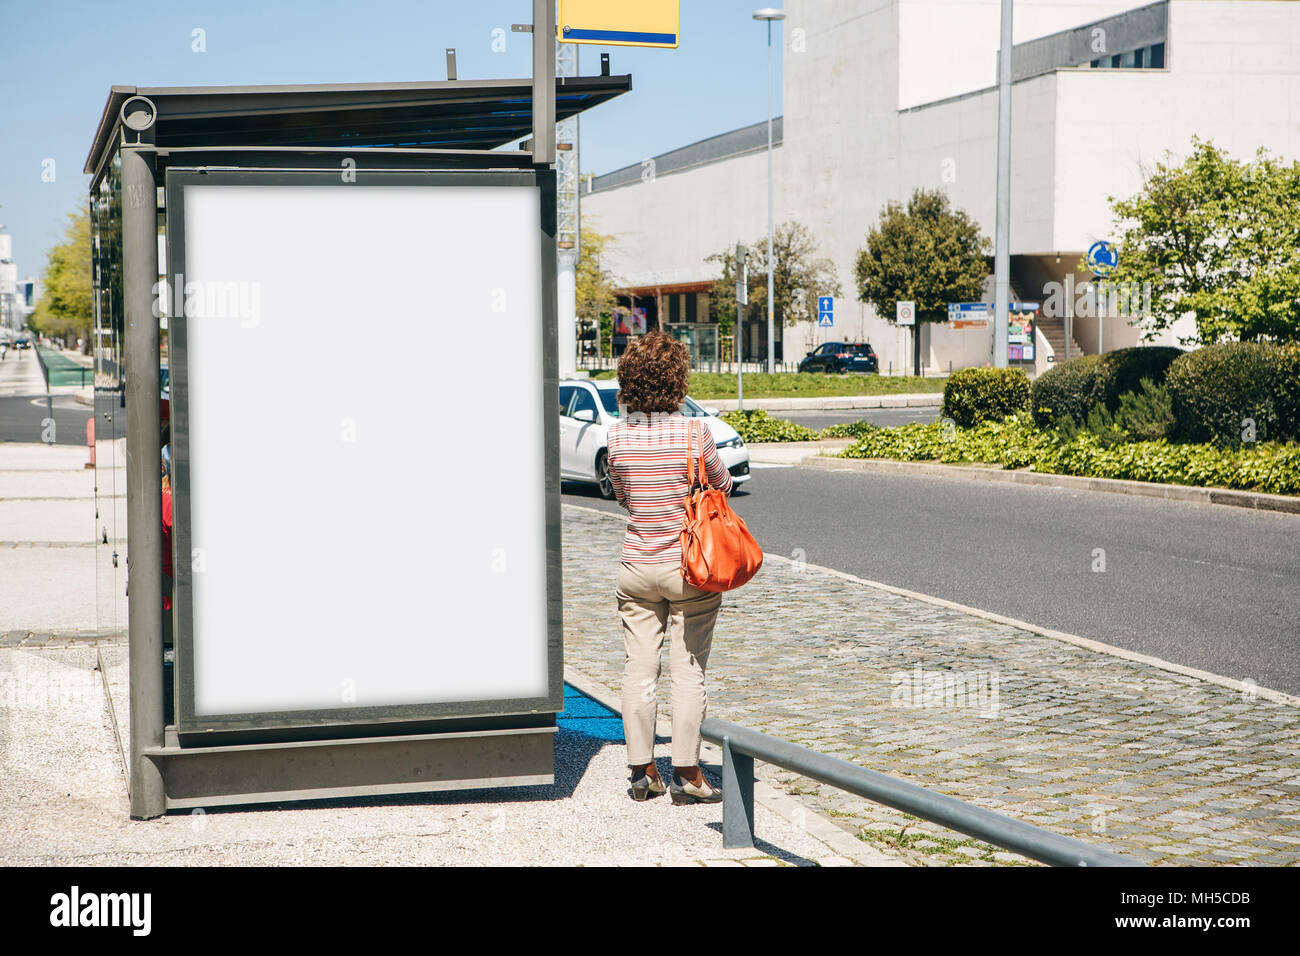 An empty billboard for outdoor advertising in Lisbon in Portugal. Street advertising. - Stock Image